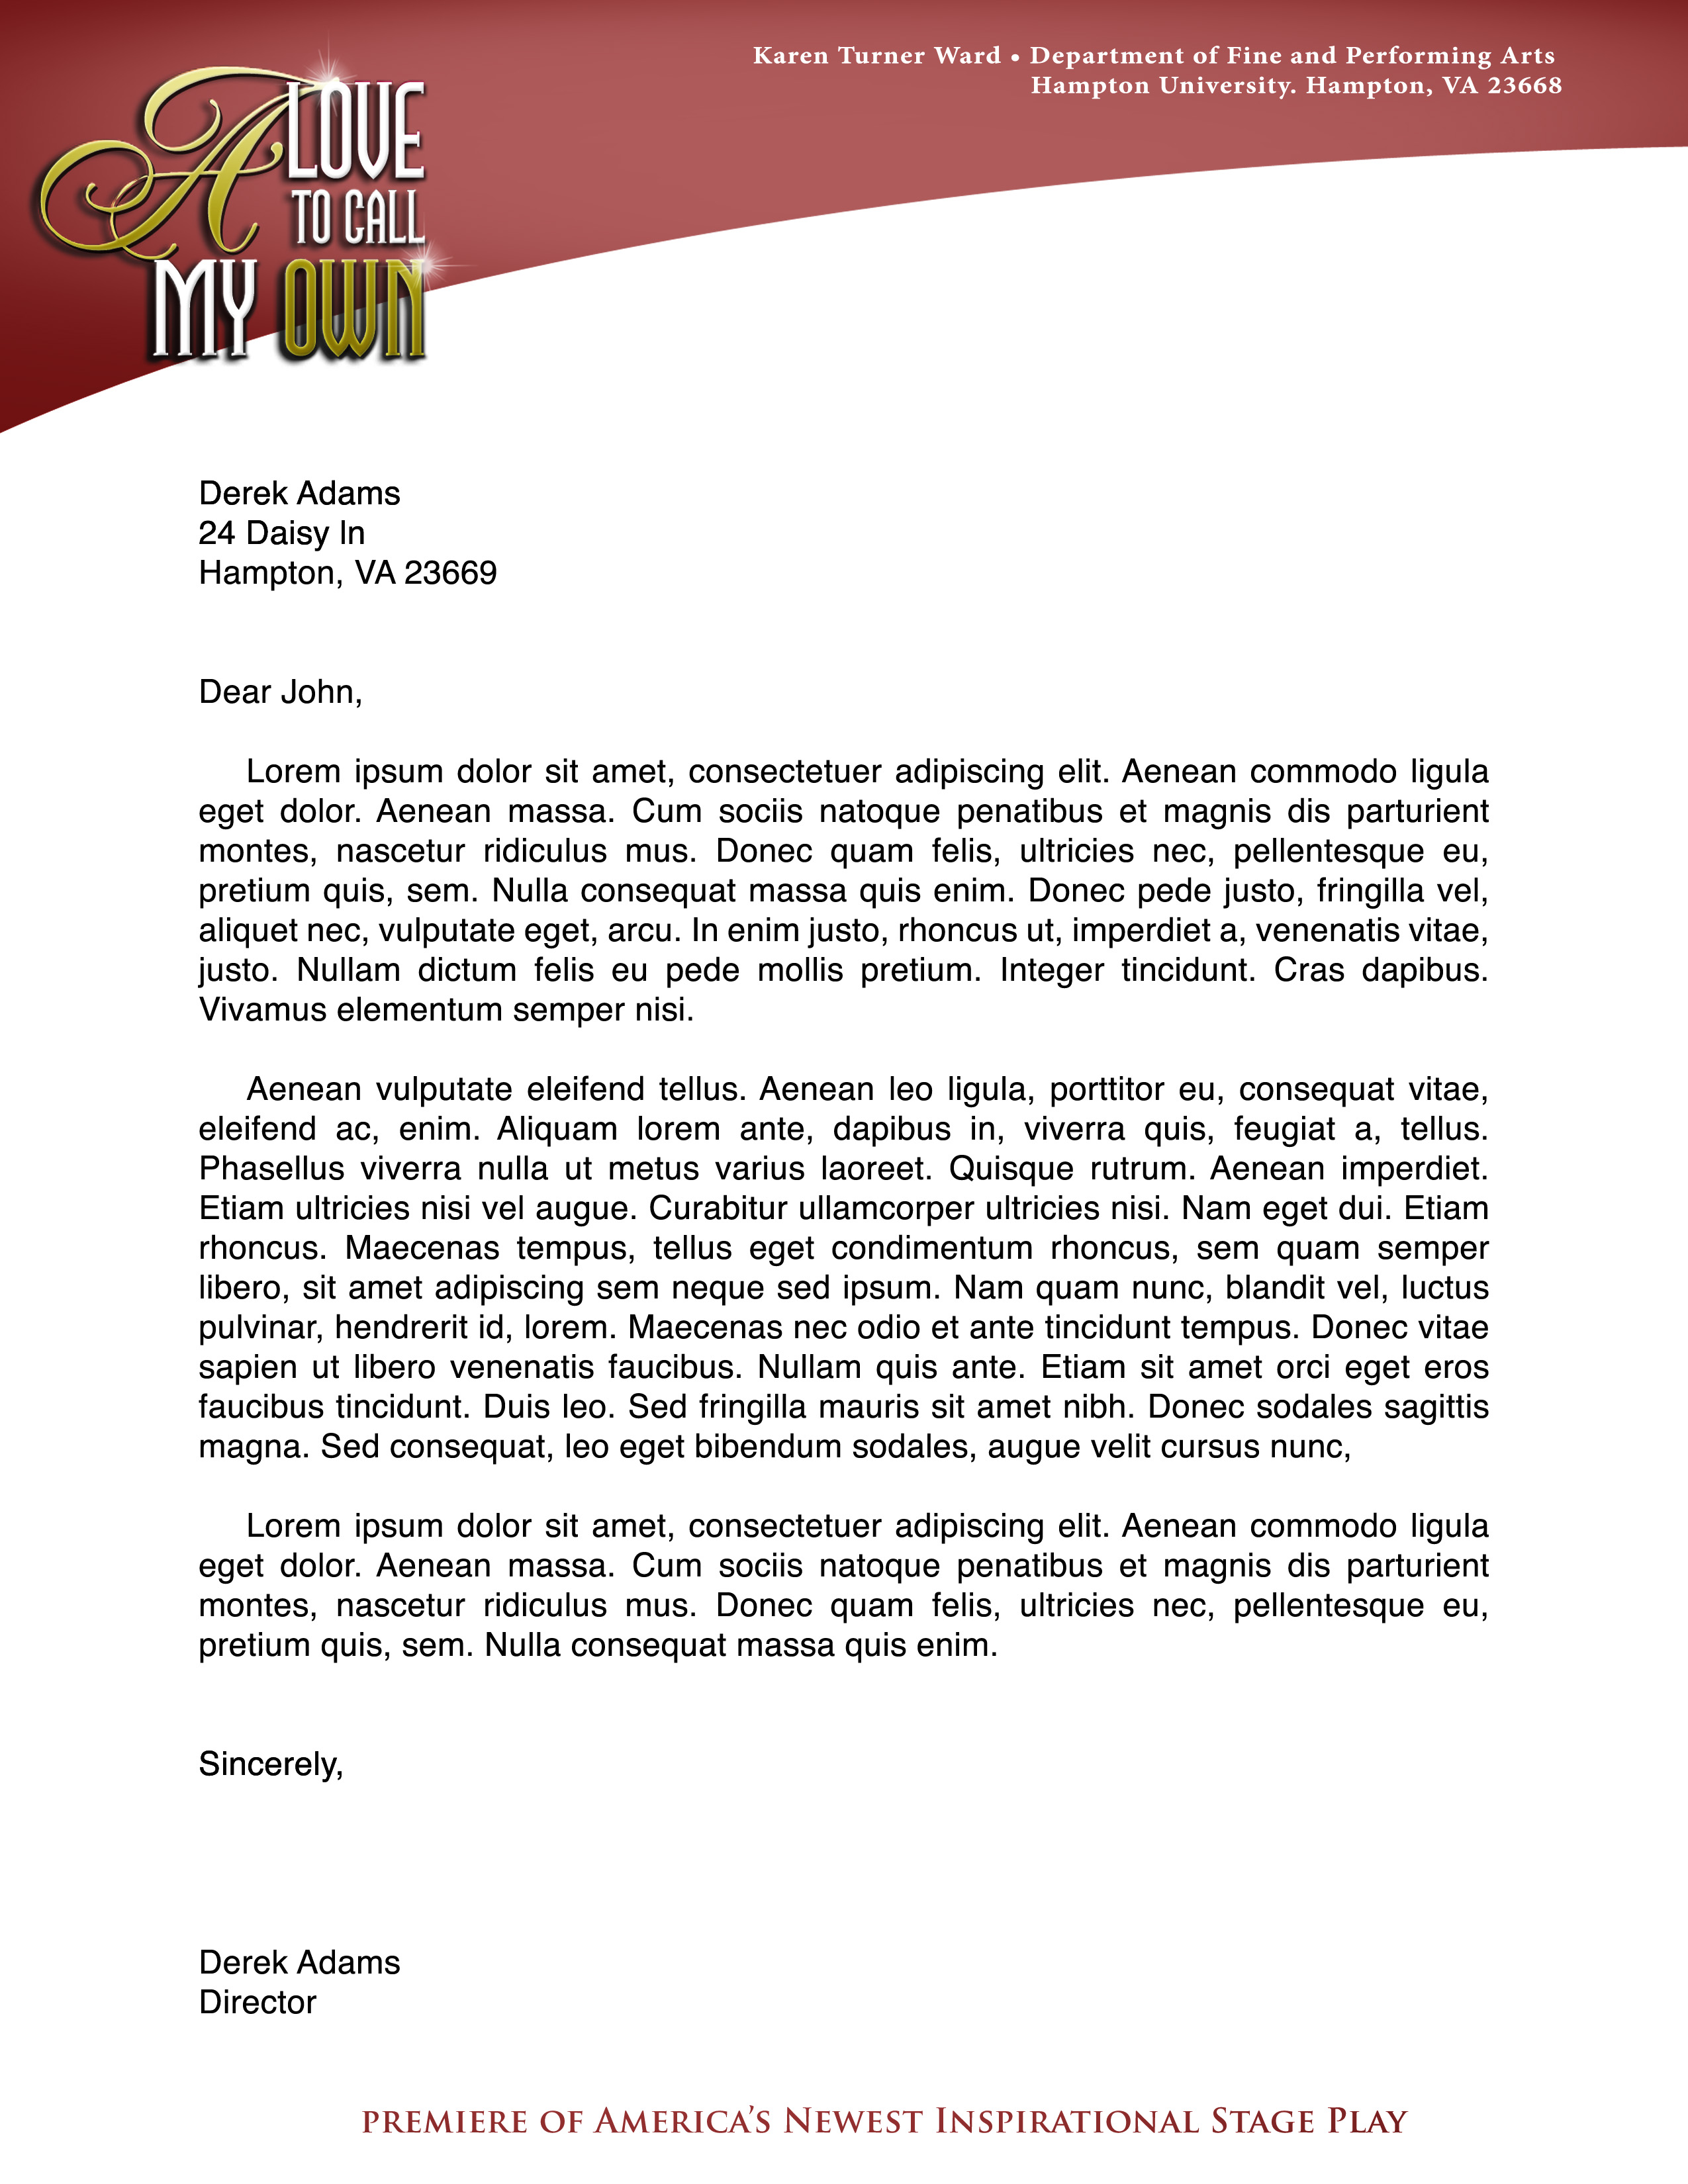 original_279002_M3lhIEJotw5GVJUYJBGMlXQPD Salvation Army Letterhead Templates on find free, free construction, professional business, for word free, free print, cleaning company, monogram personal,